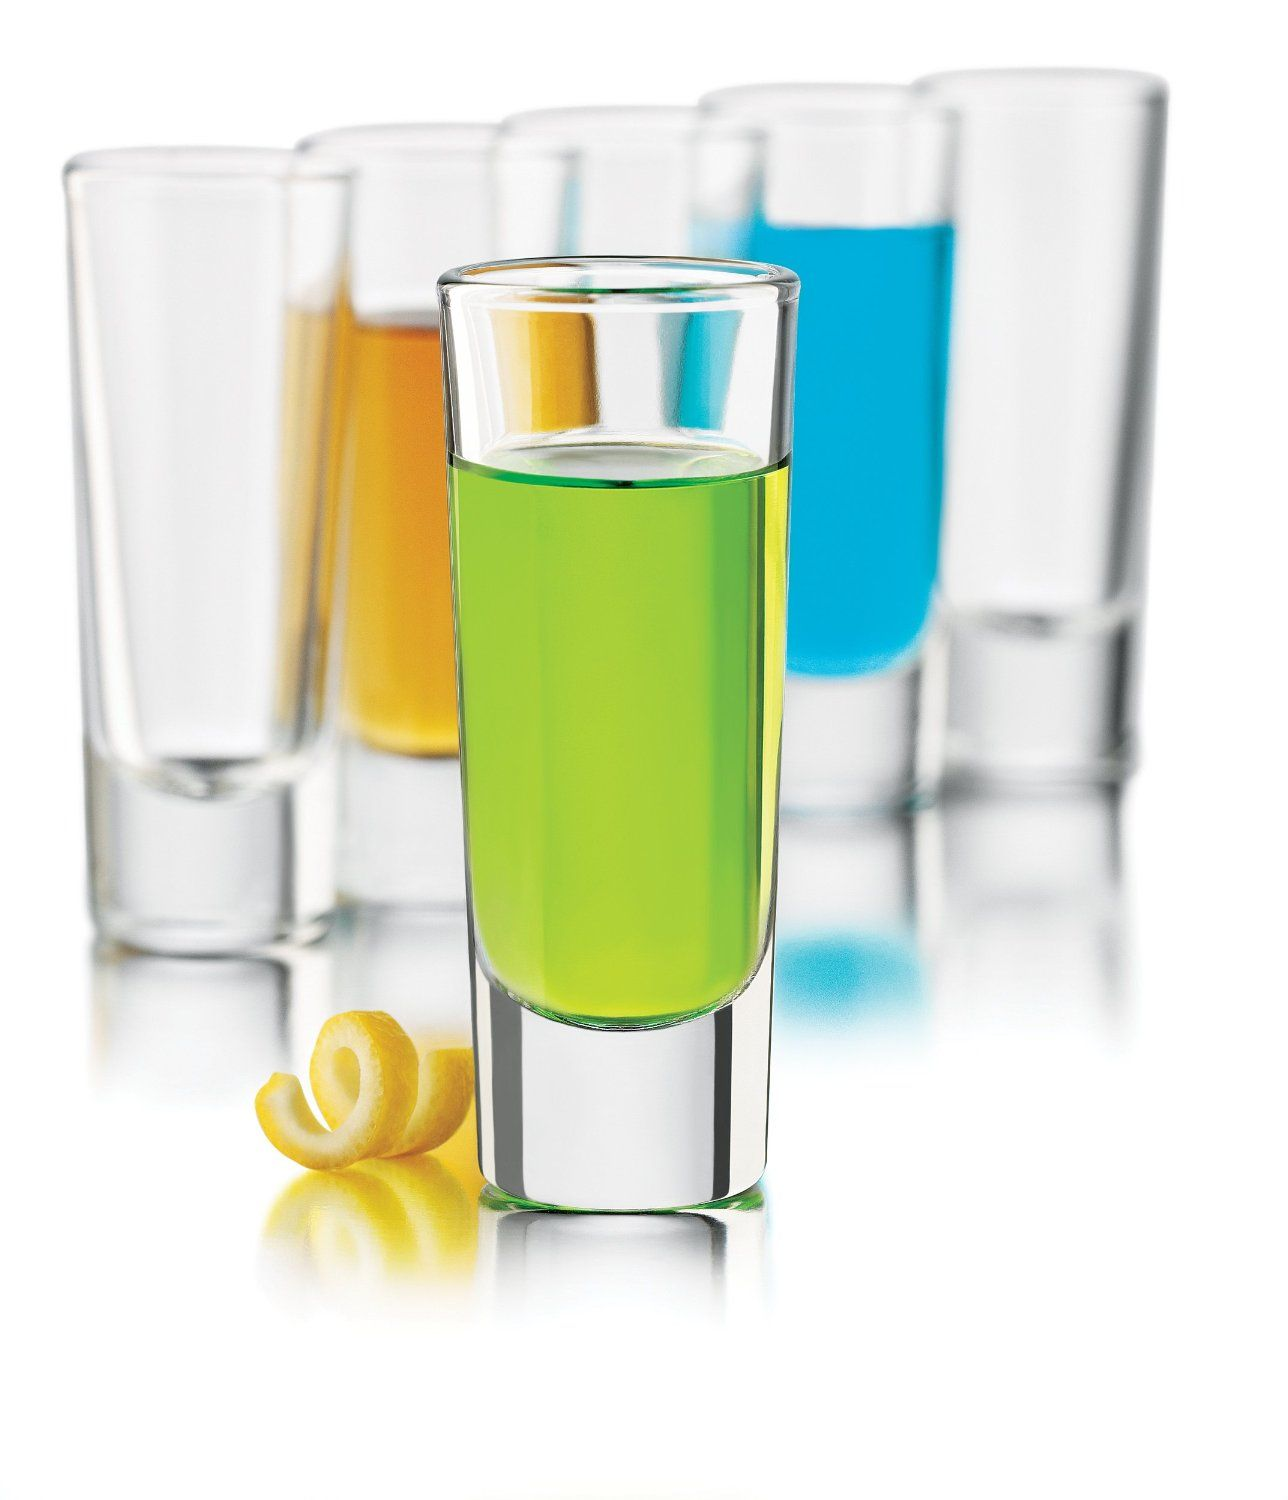 Amazon.com: Libbey 2-Ounce Clear Shooter Glass Set, 6-Piece: Shot Glasses: Kitchen & Dining